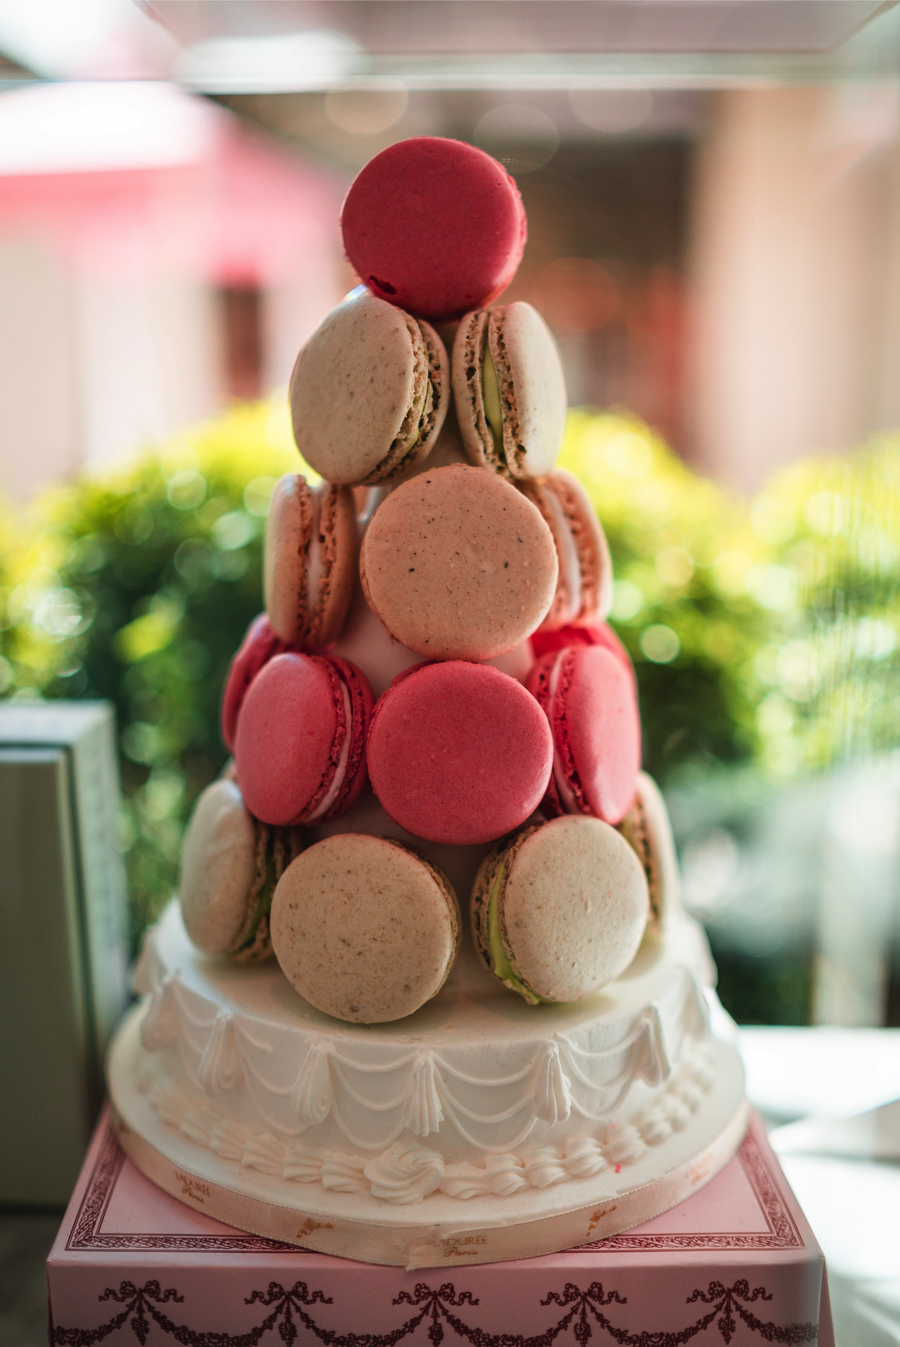 macaroon-wedding-cake-trends-2019_0.jpg